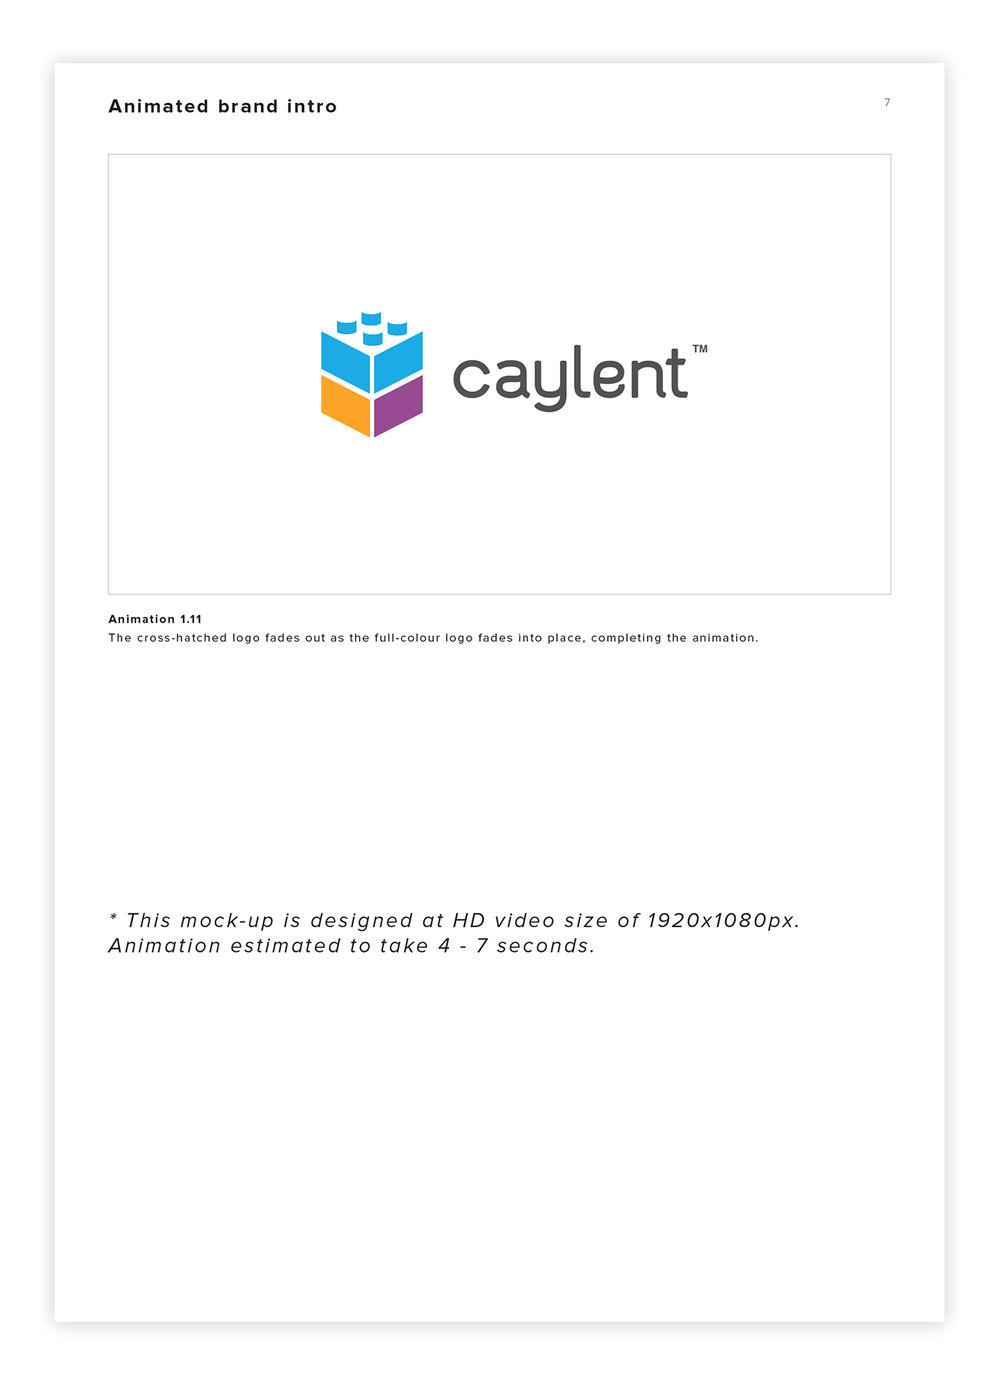 Caylent_Animated_Brand_Intro_Presentation.6.jpg